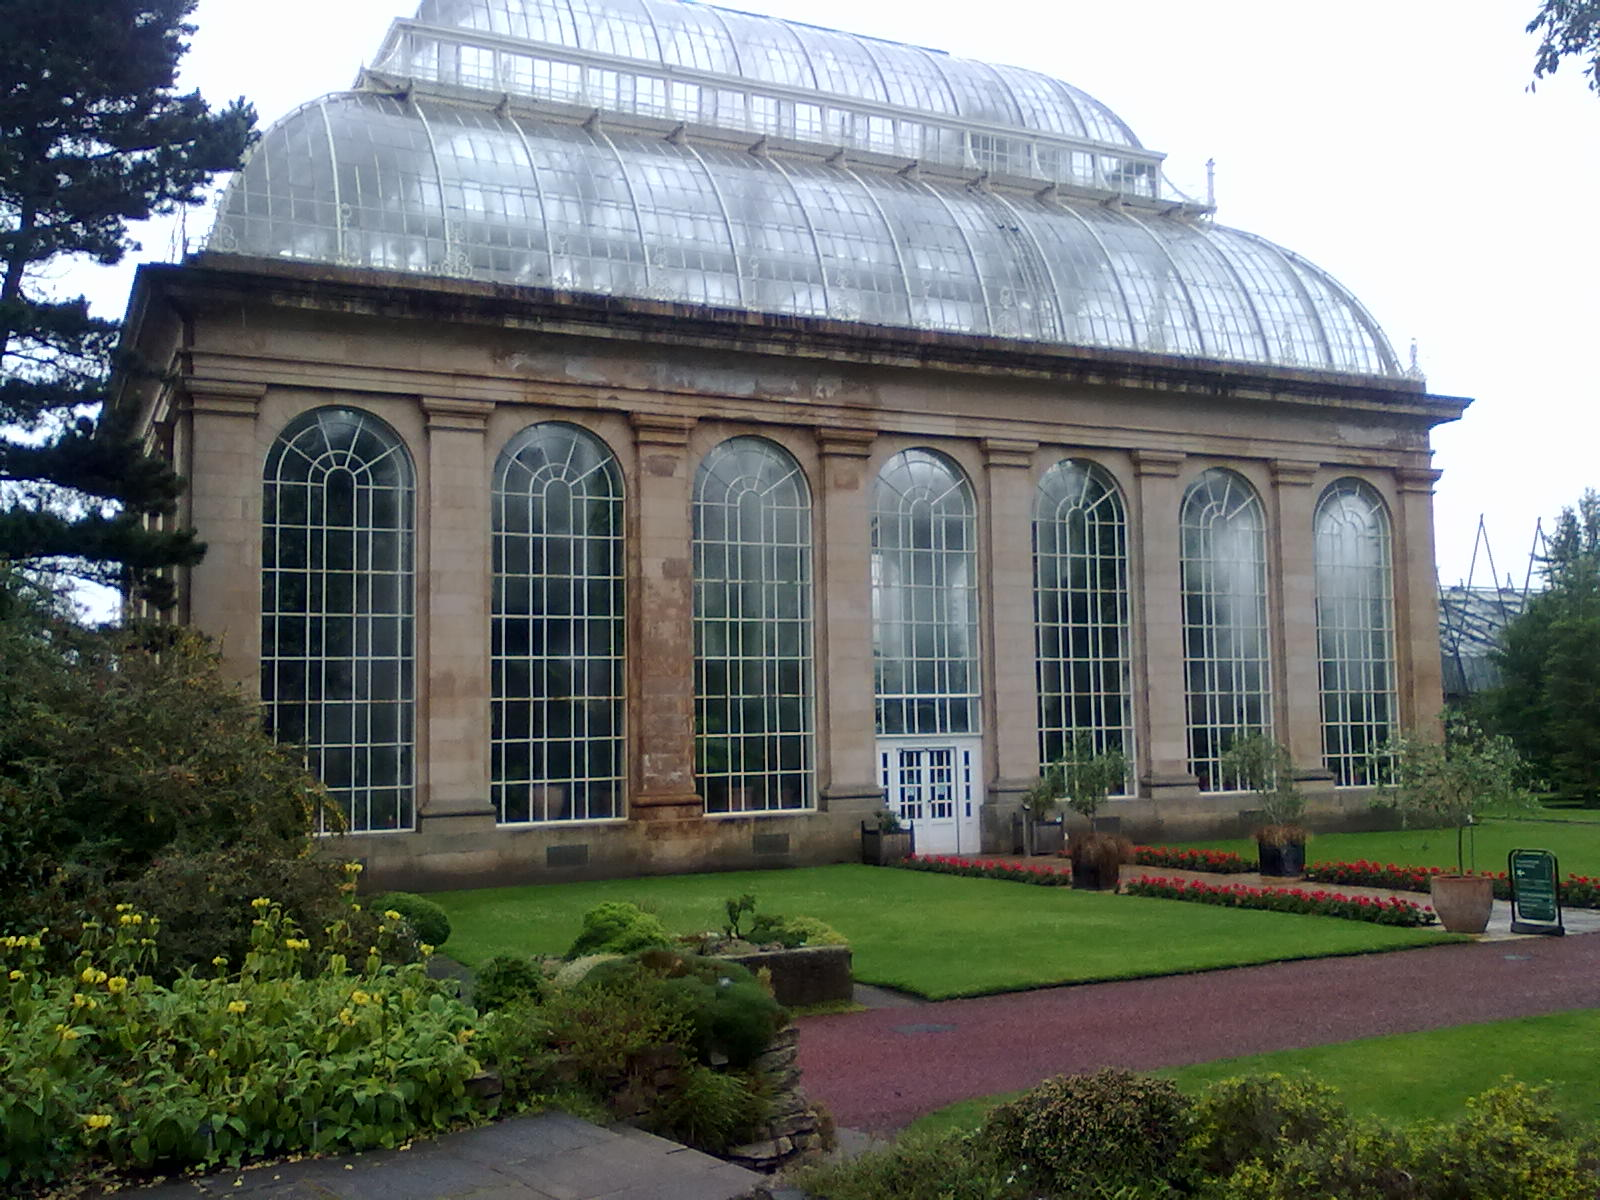 File:Royal Botanic Garden Edinburgh, Palm House 06